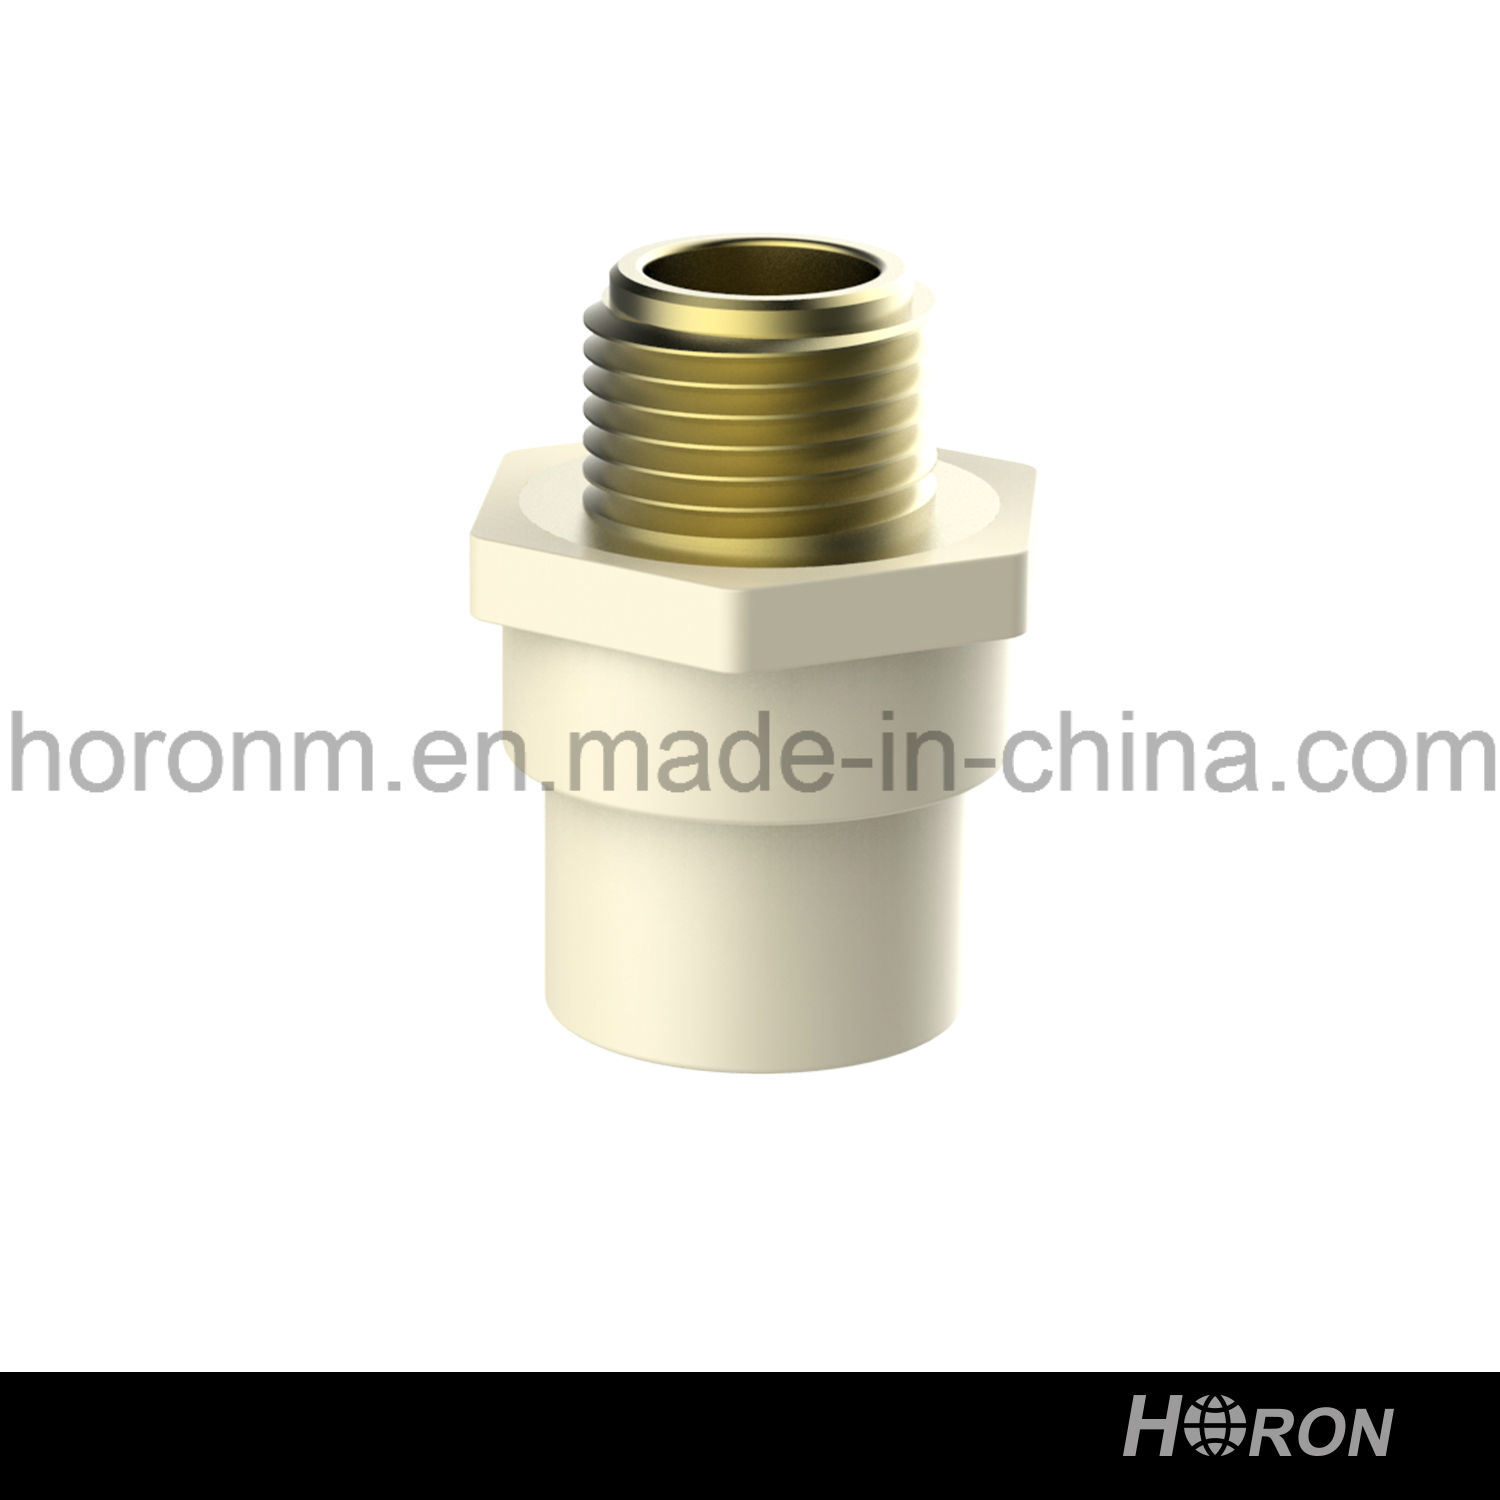 CPVC D2846 Water Pipe Fitting (MALE COUPLING)